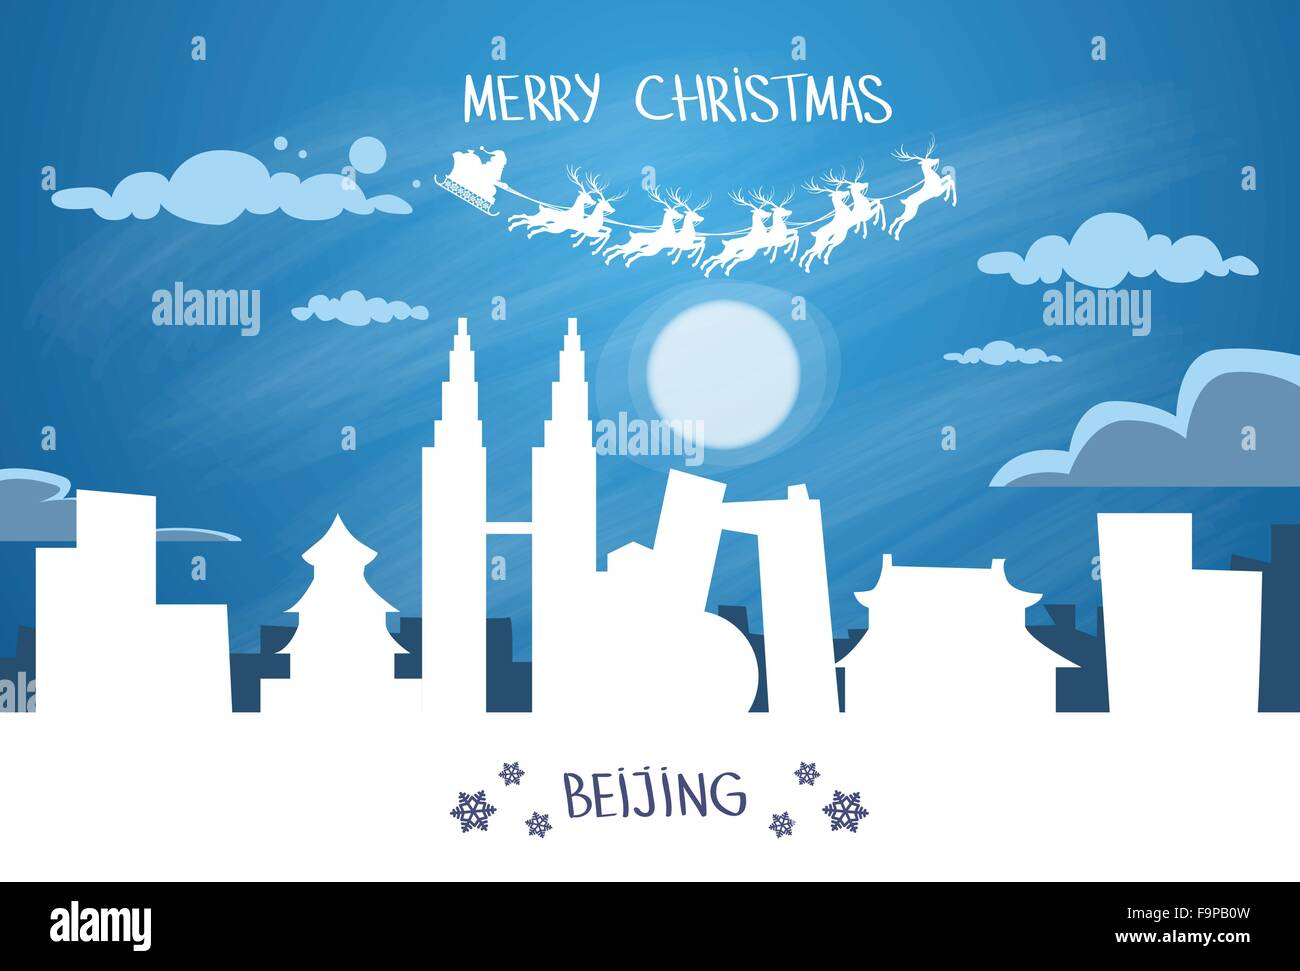 Santa Claus Sleigh Reindeer Fly China Asia Sky over Beijing City Silhouette - Stock Image